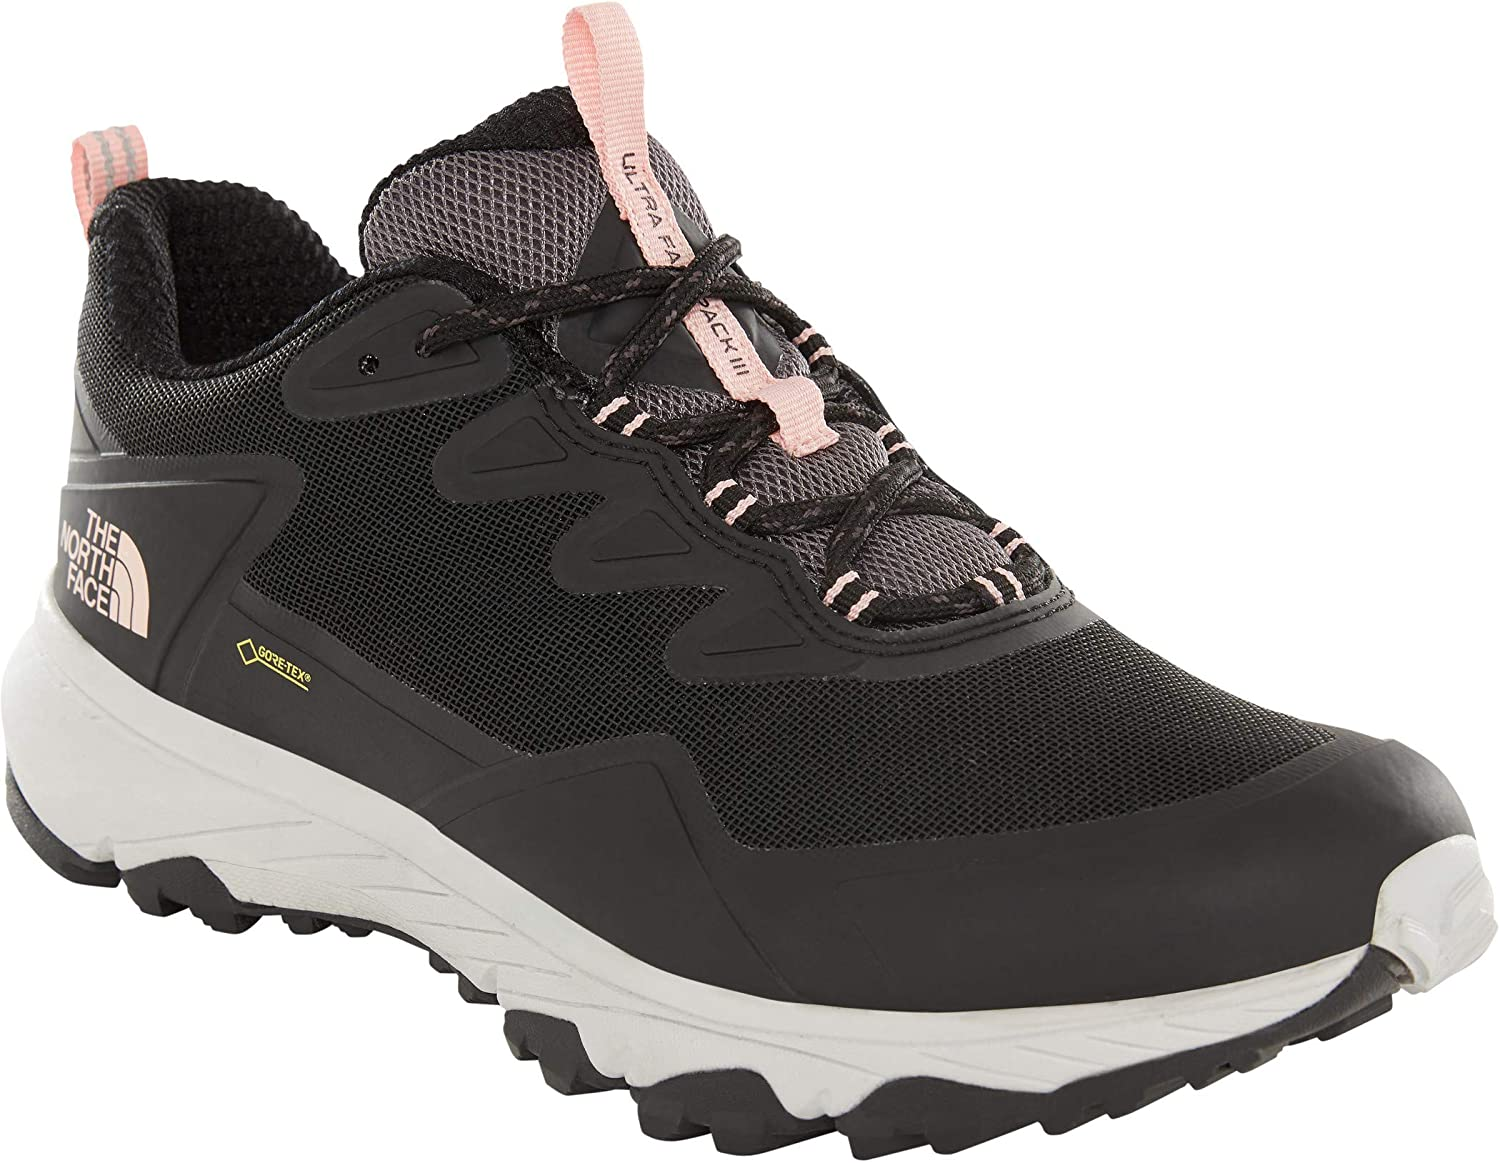 The North Face Ultra Fastpack III GTX - Chaussures Femme - Rose/Noir 2019